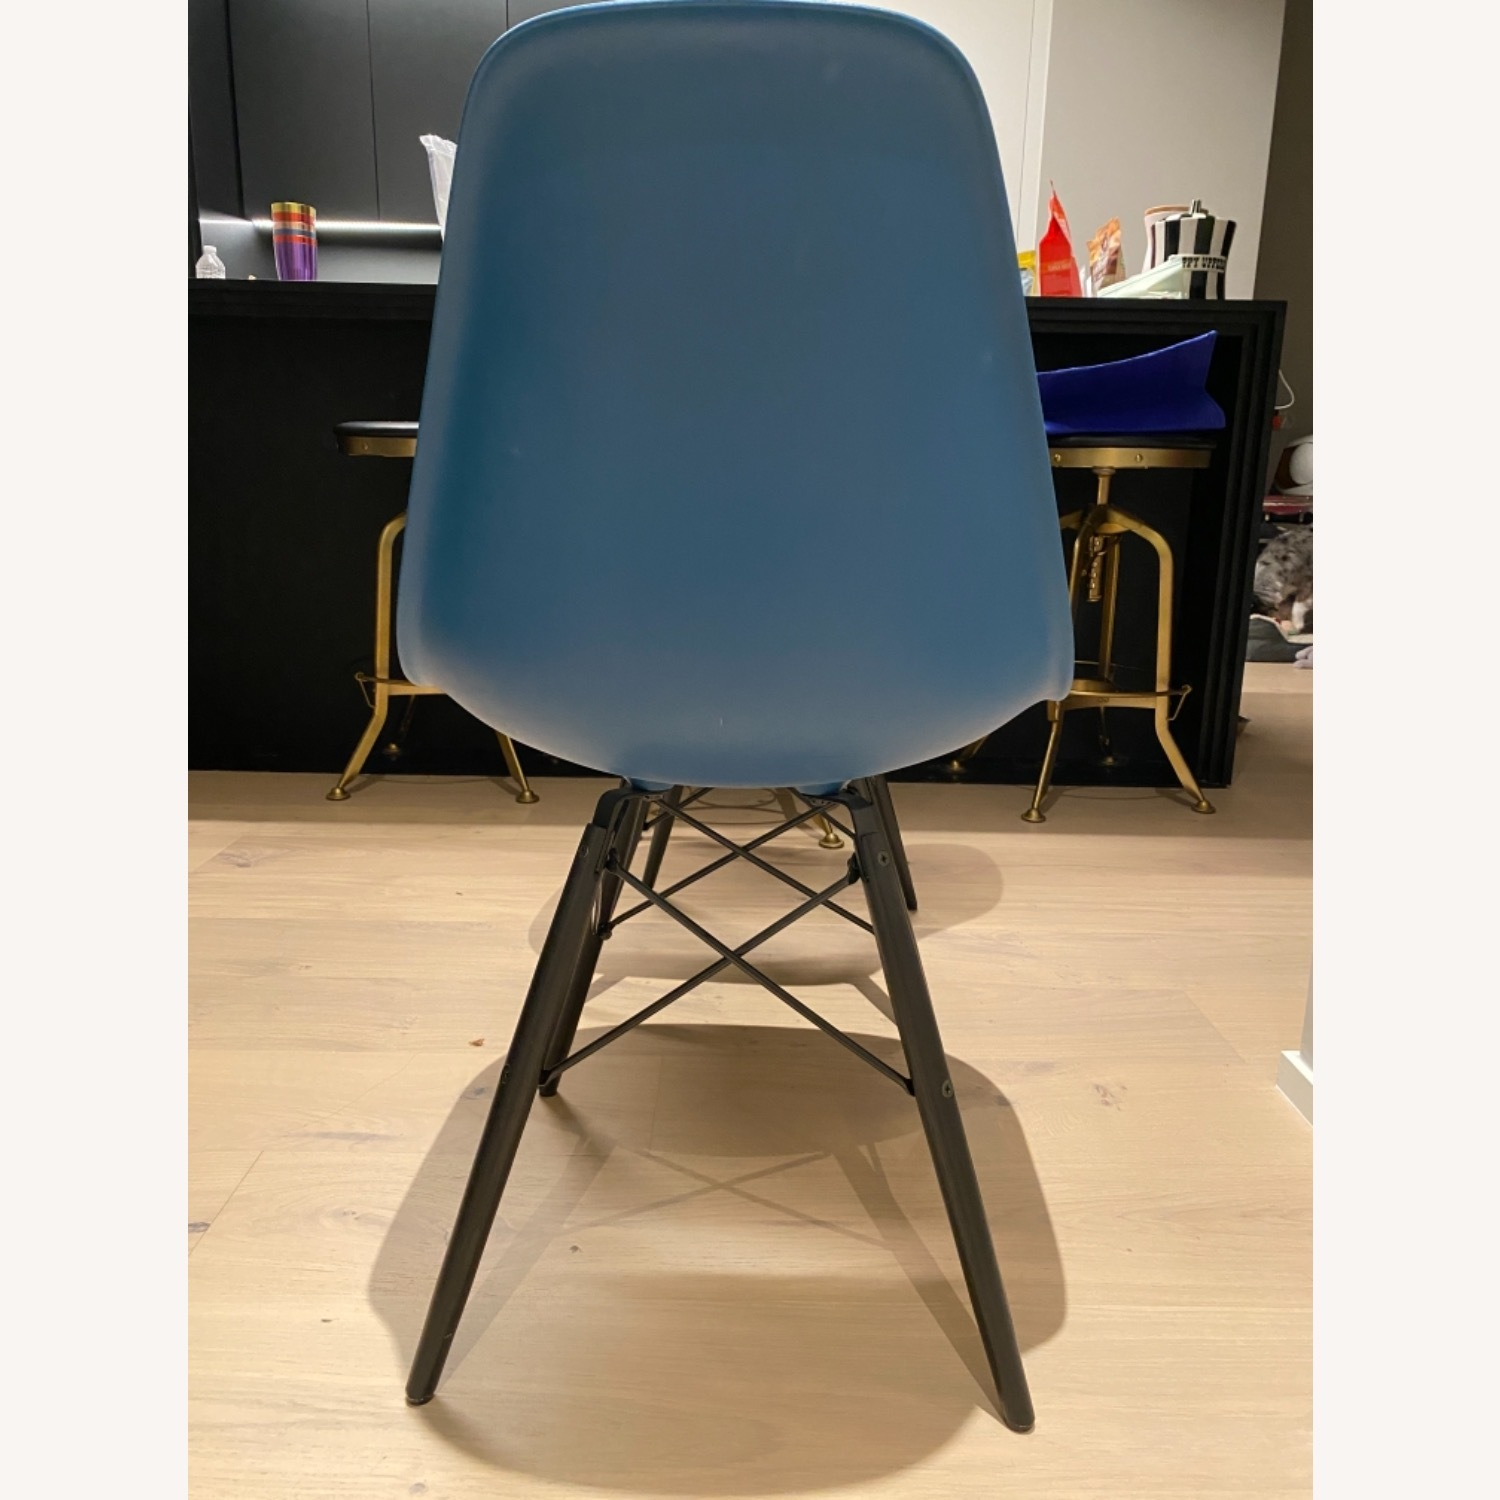 4 x Herman Miller Eames Molded Plastic Side Chair - image-8